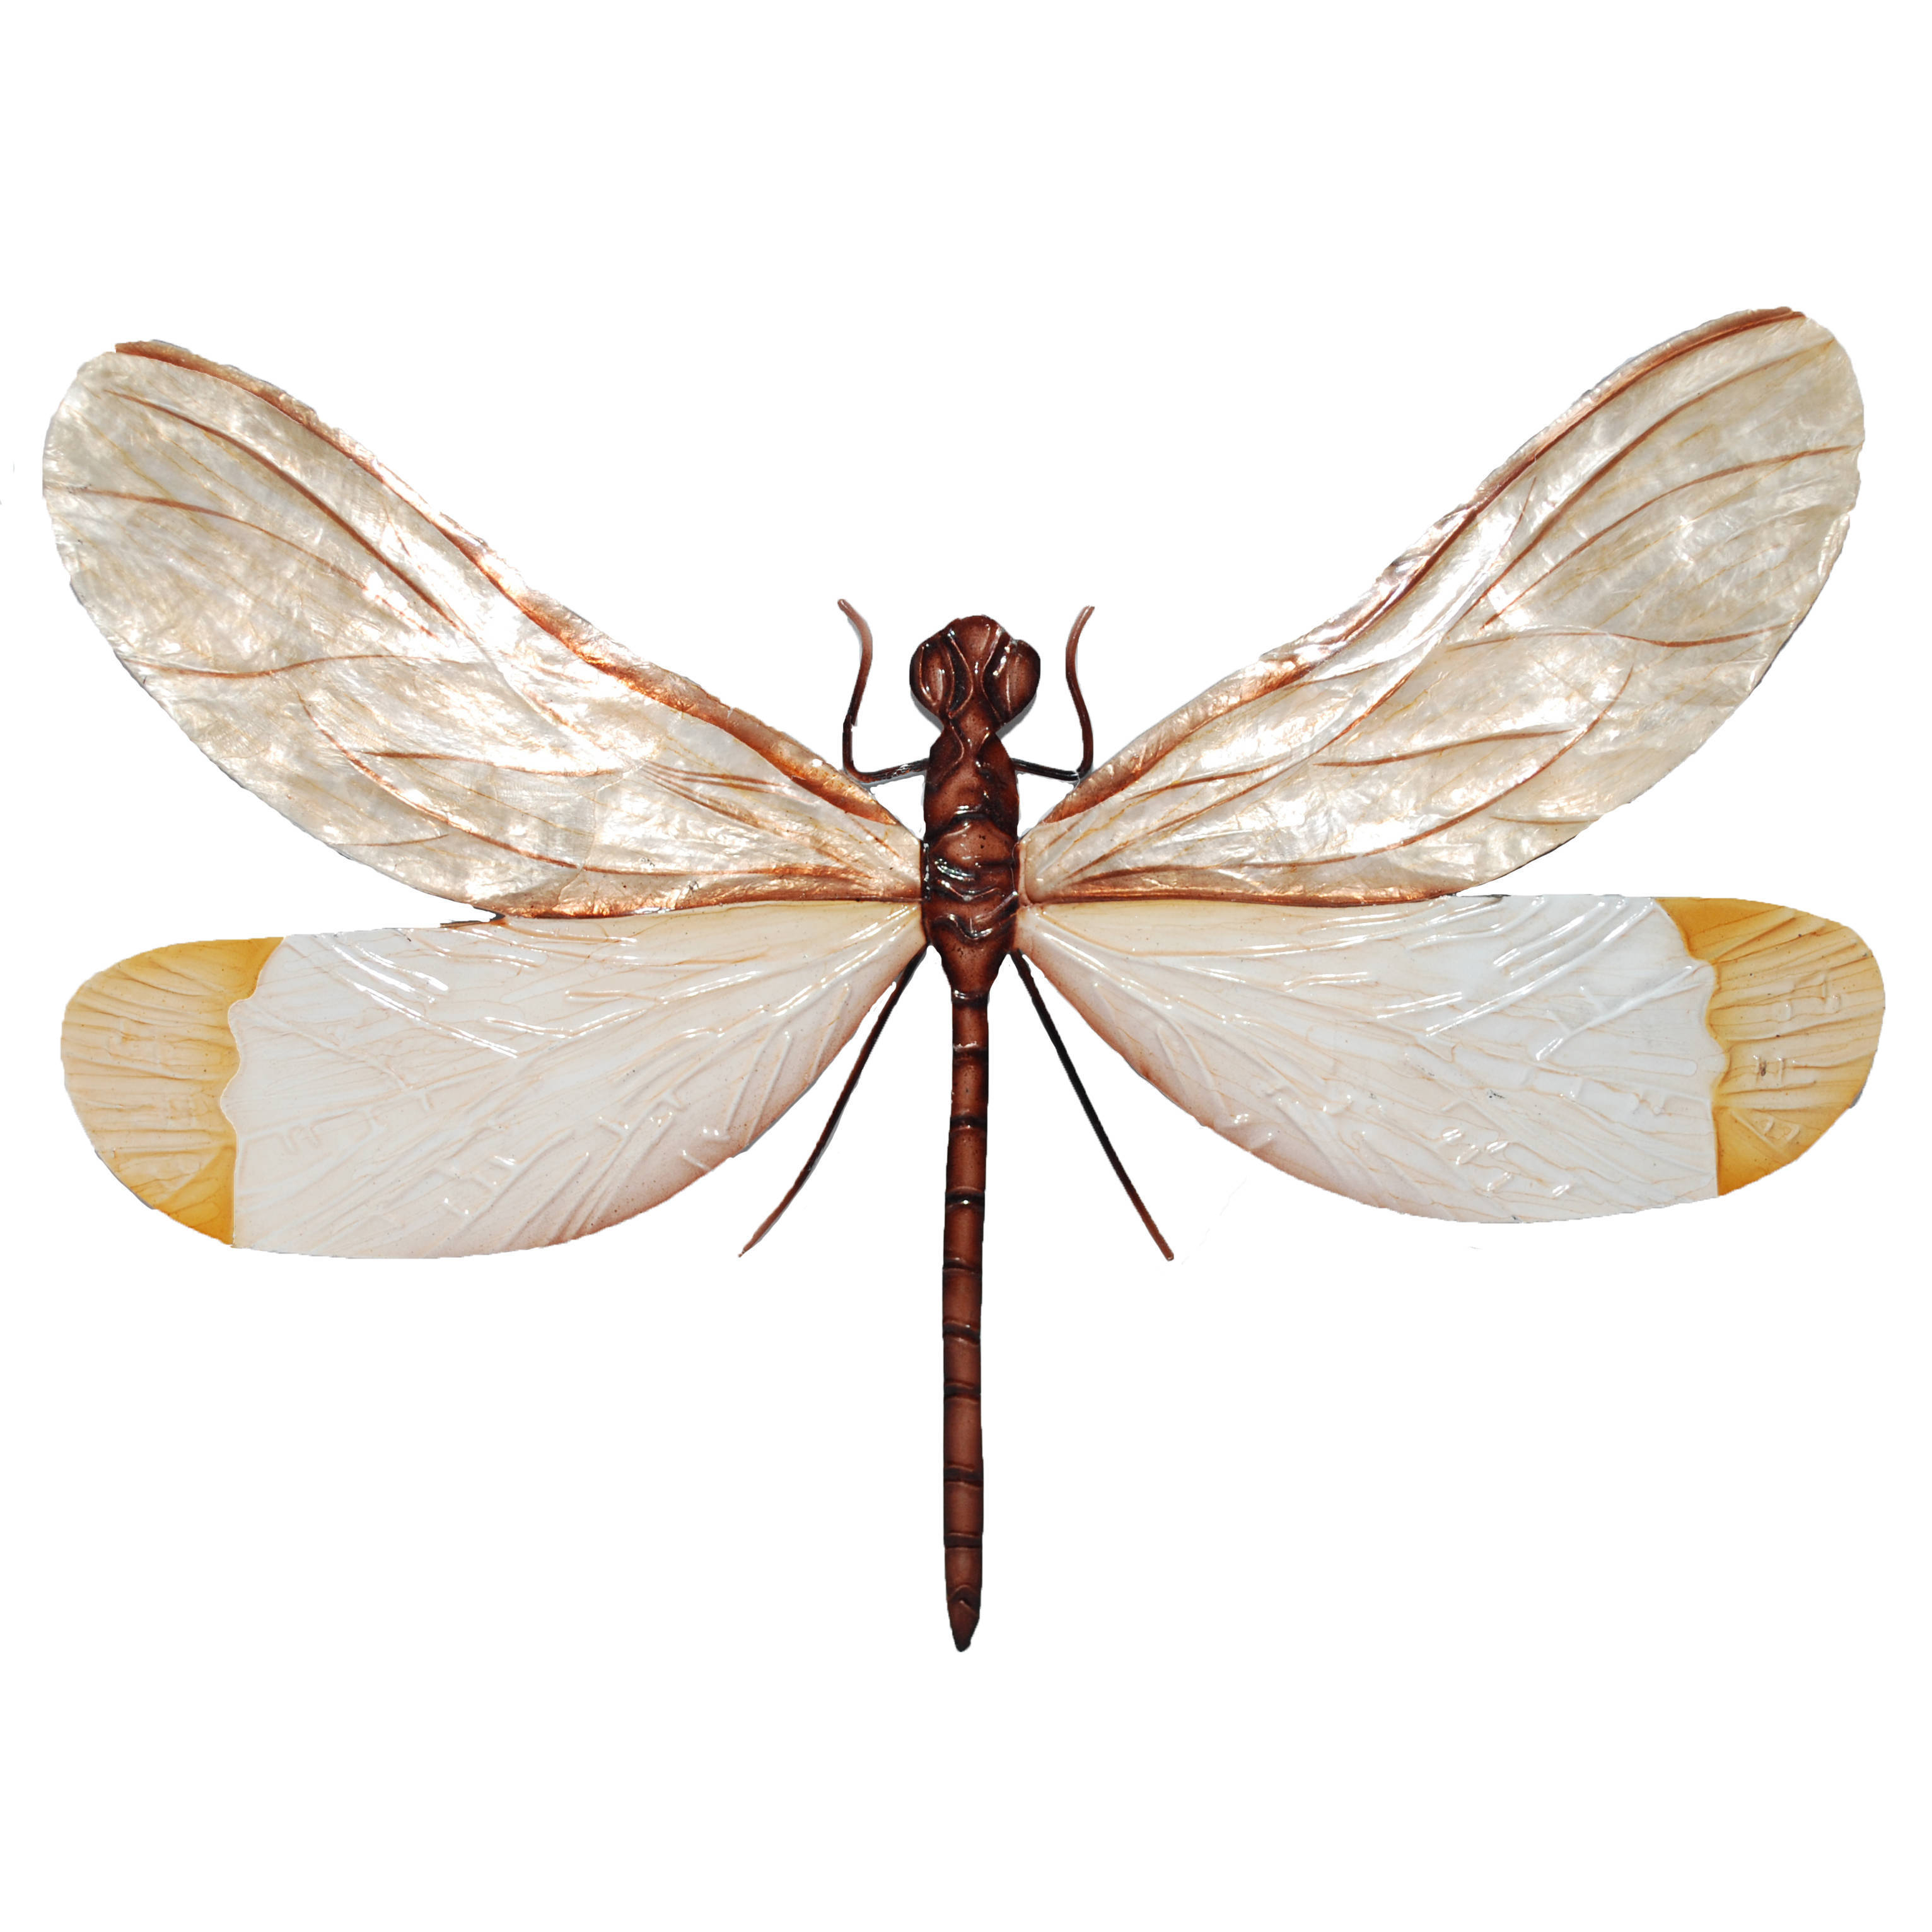 Newest Shop White And Brown Dragonfly Wall Decor – On Sale – Free Shipping In Dragonfly Wall Decor (View 18 of 20)